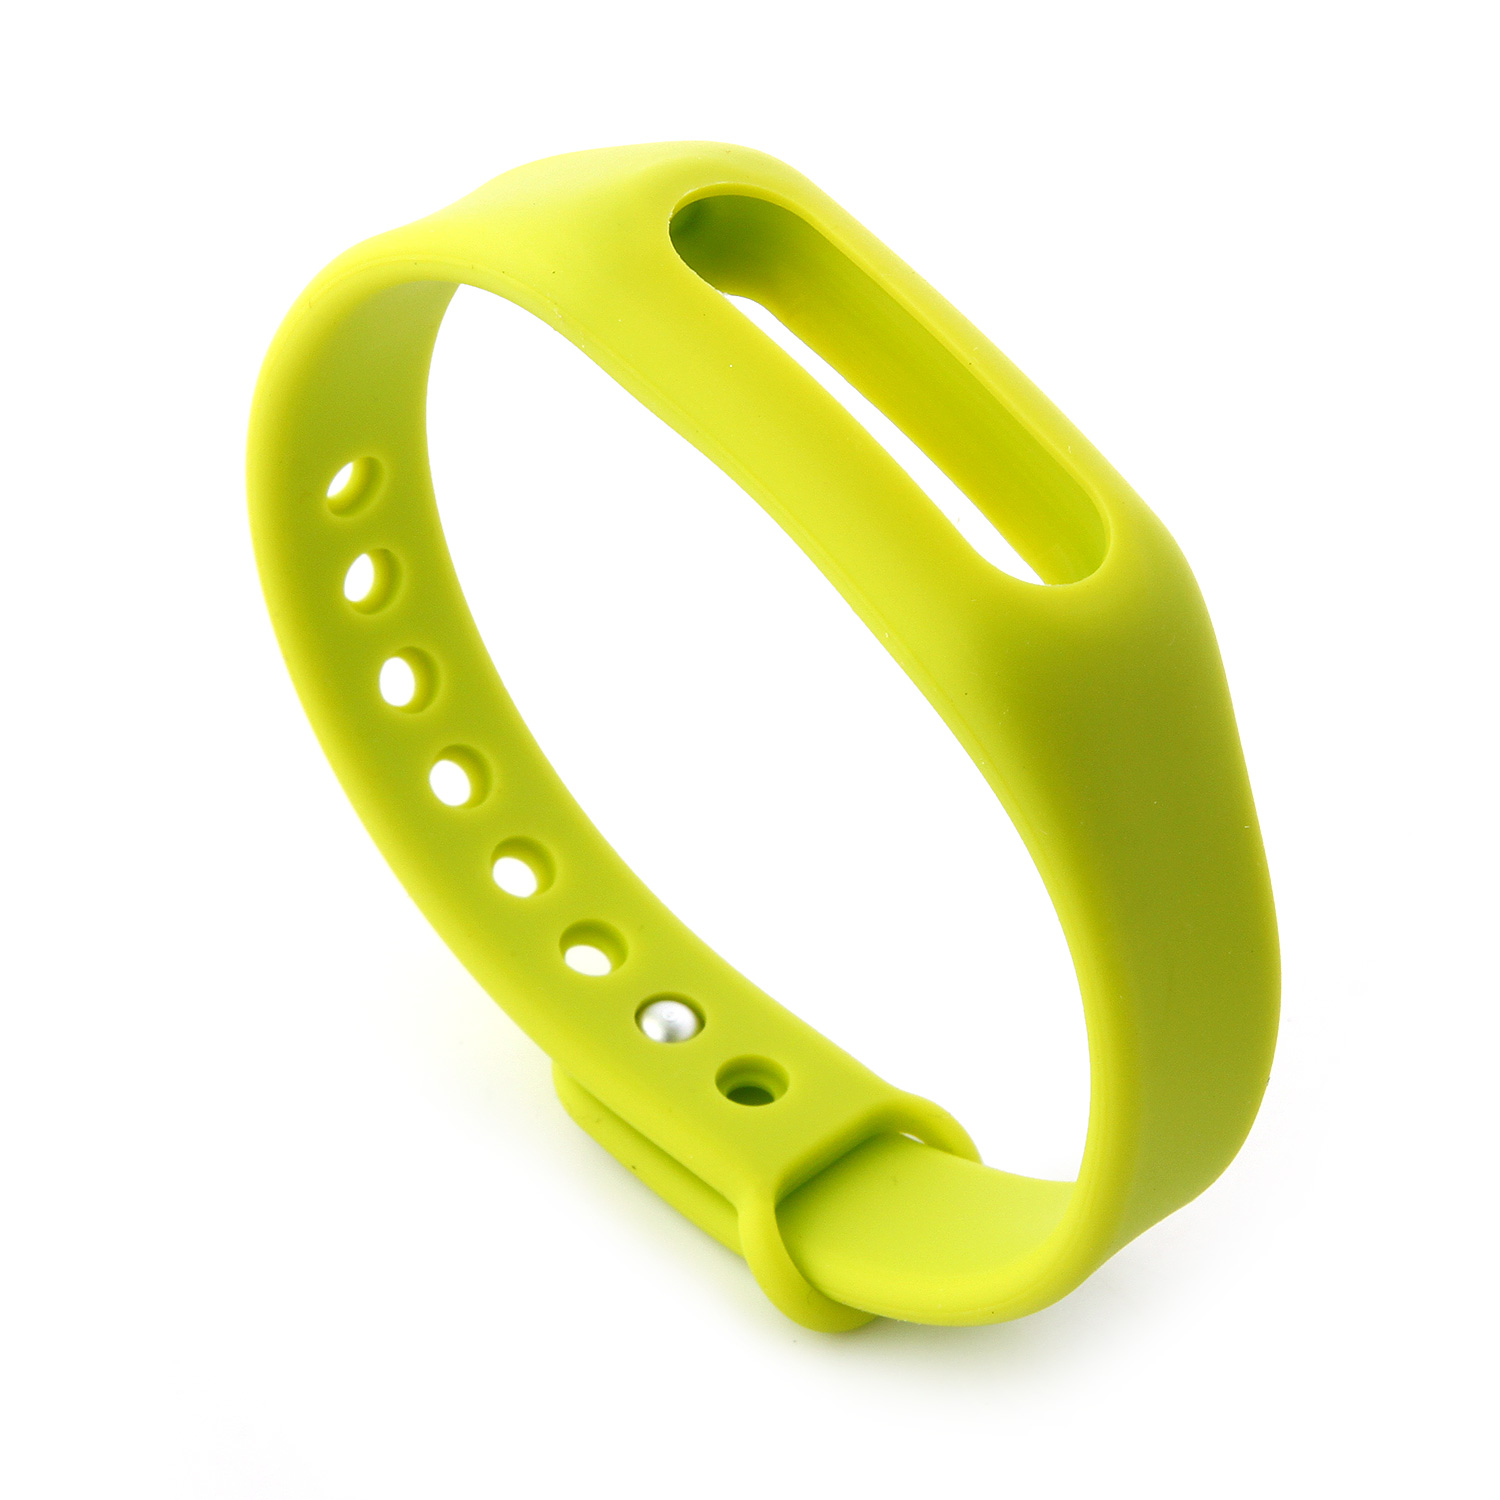 Replacement Wrist Strap Wearable Wrist Band for XIAOMI MI Band Bracelet- Green